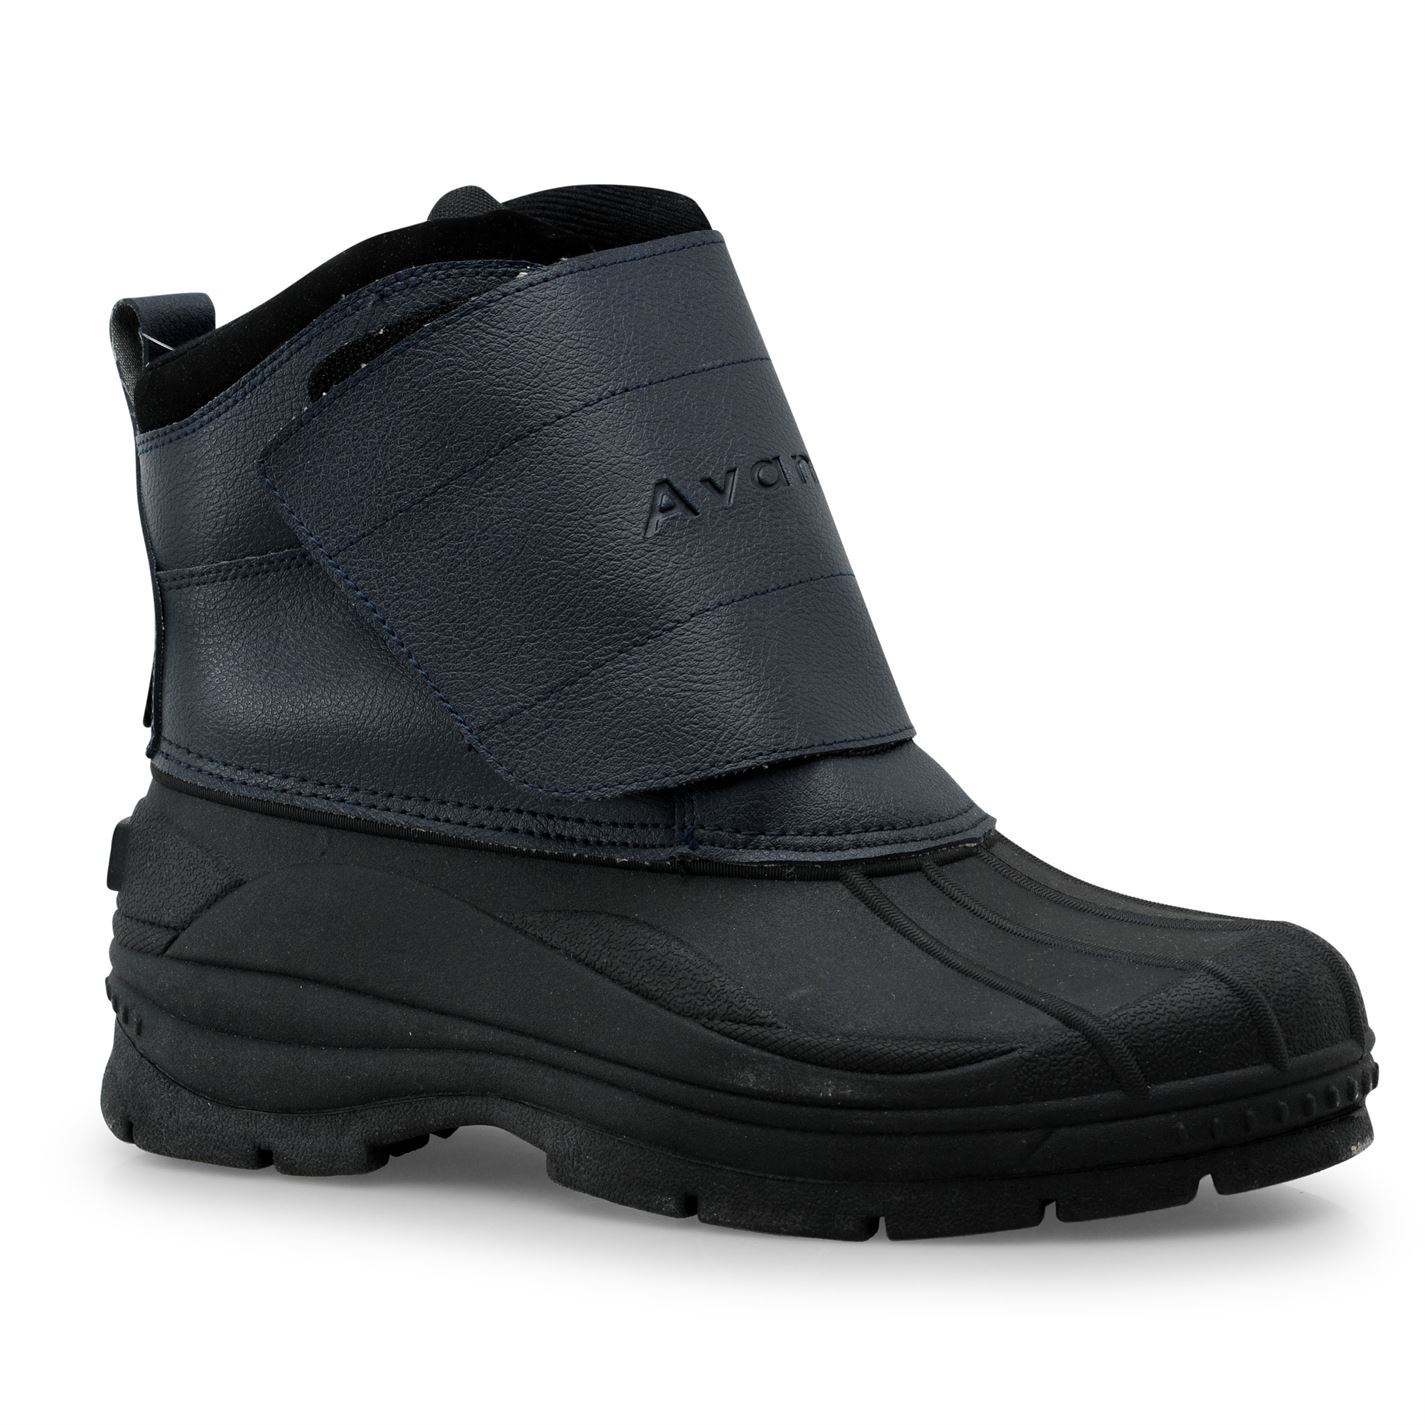 Avanti Mens Iso Fishing Boots Gents Velcro Waterproof Warm